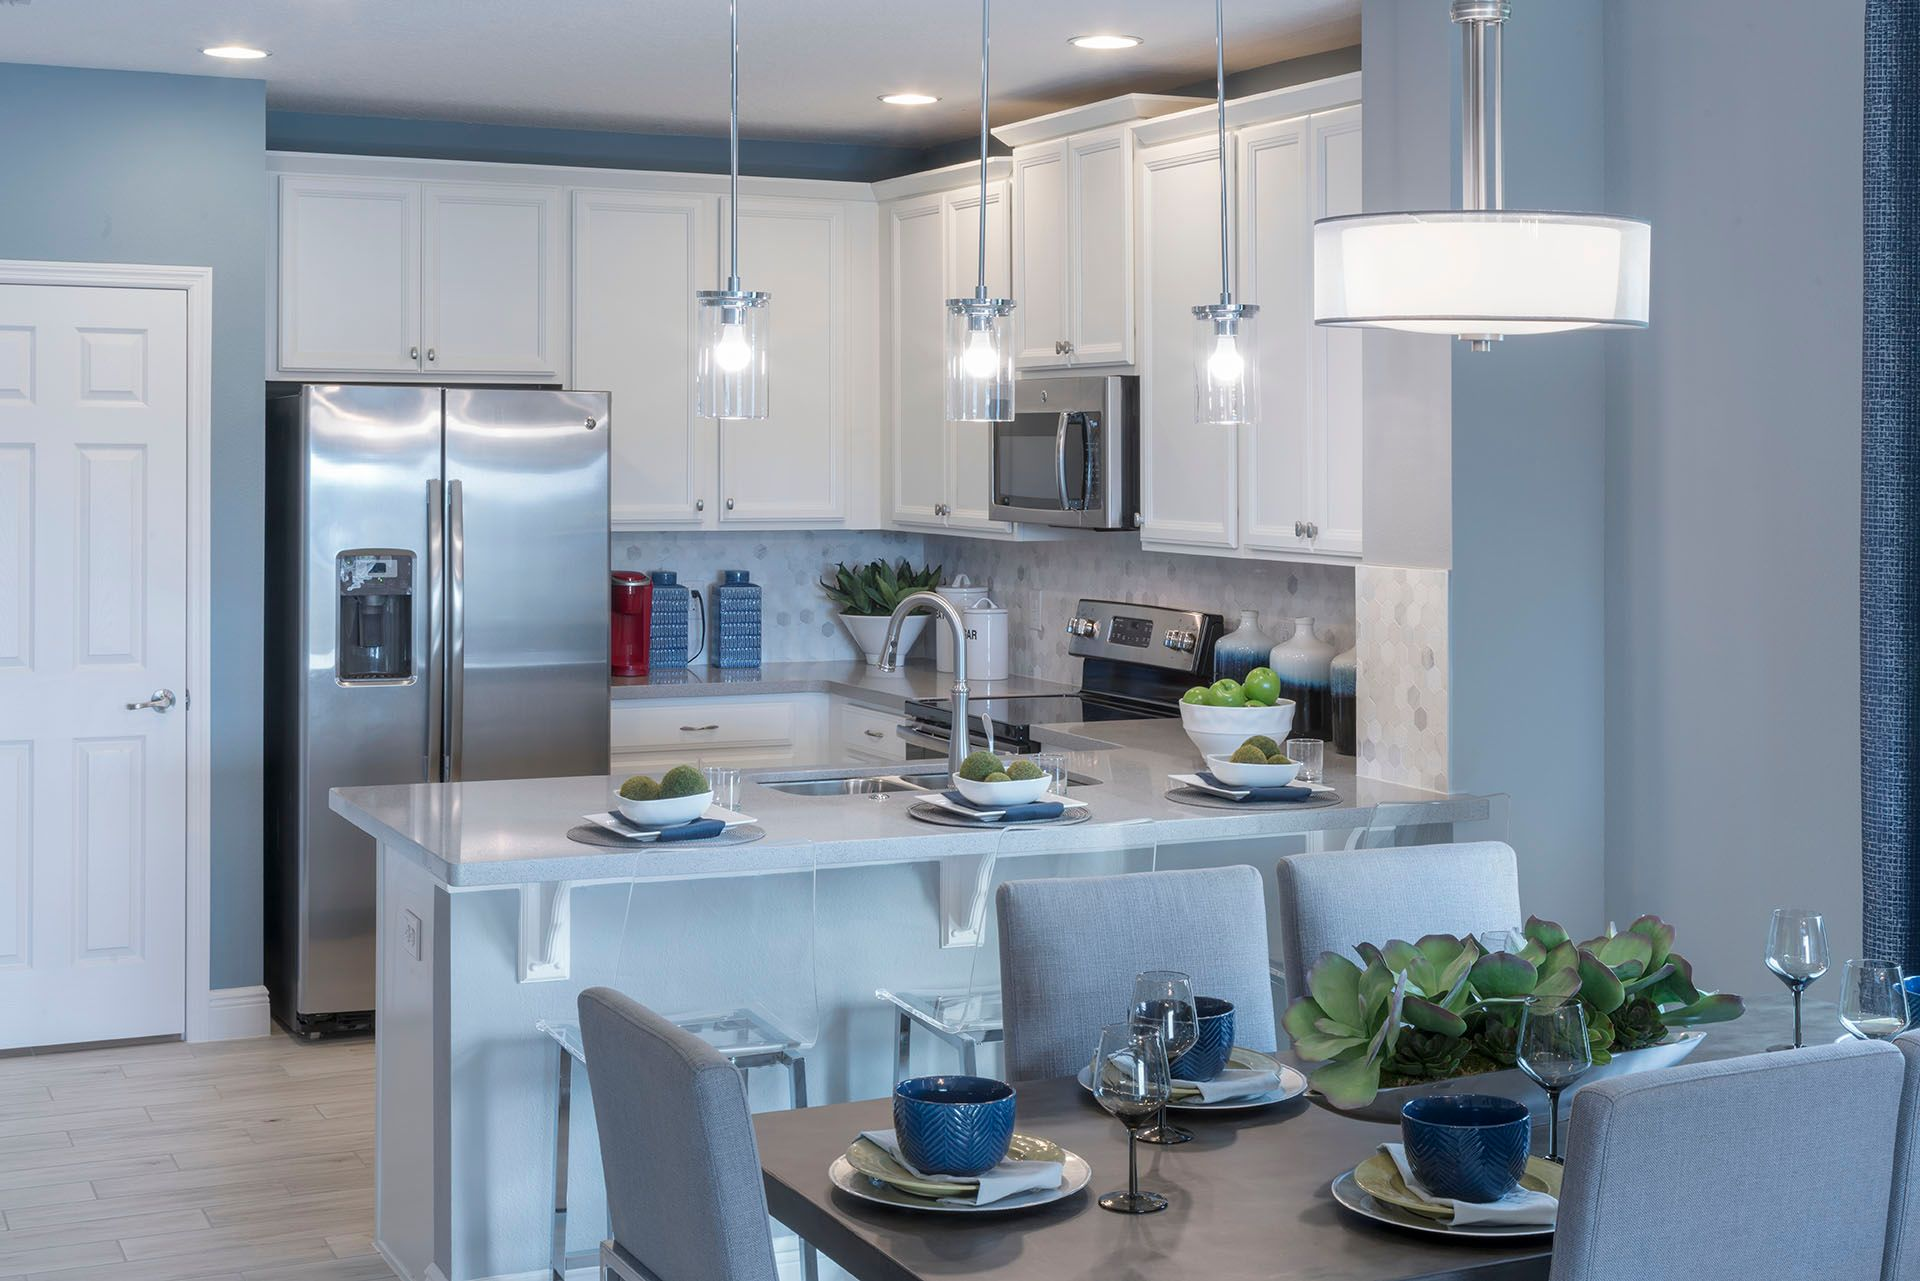 Overlook Reserve Lexington Model Home - Kitchen and Dining Area:Kissimmee, Florida New Home Community